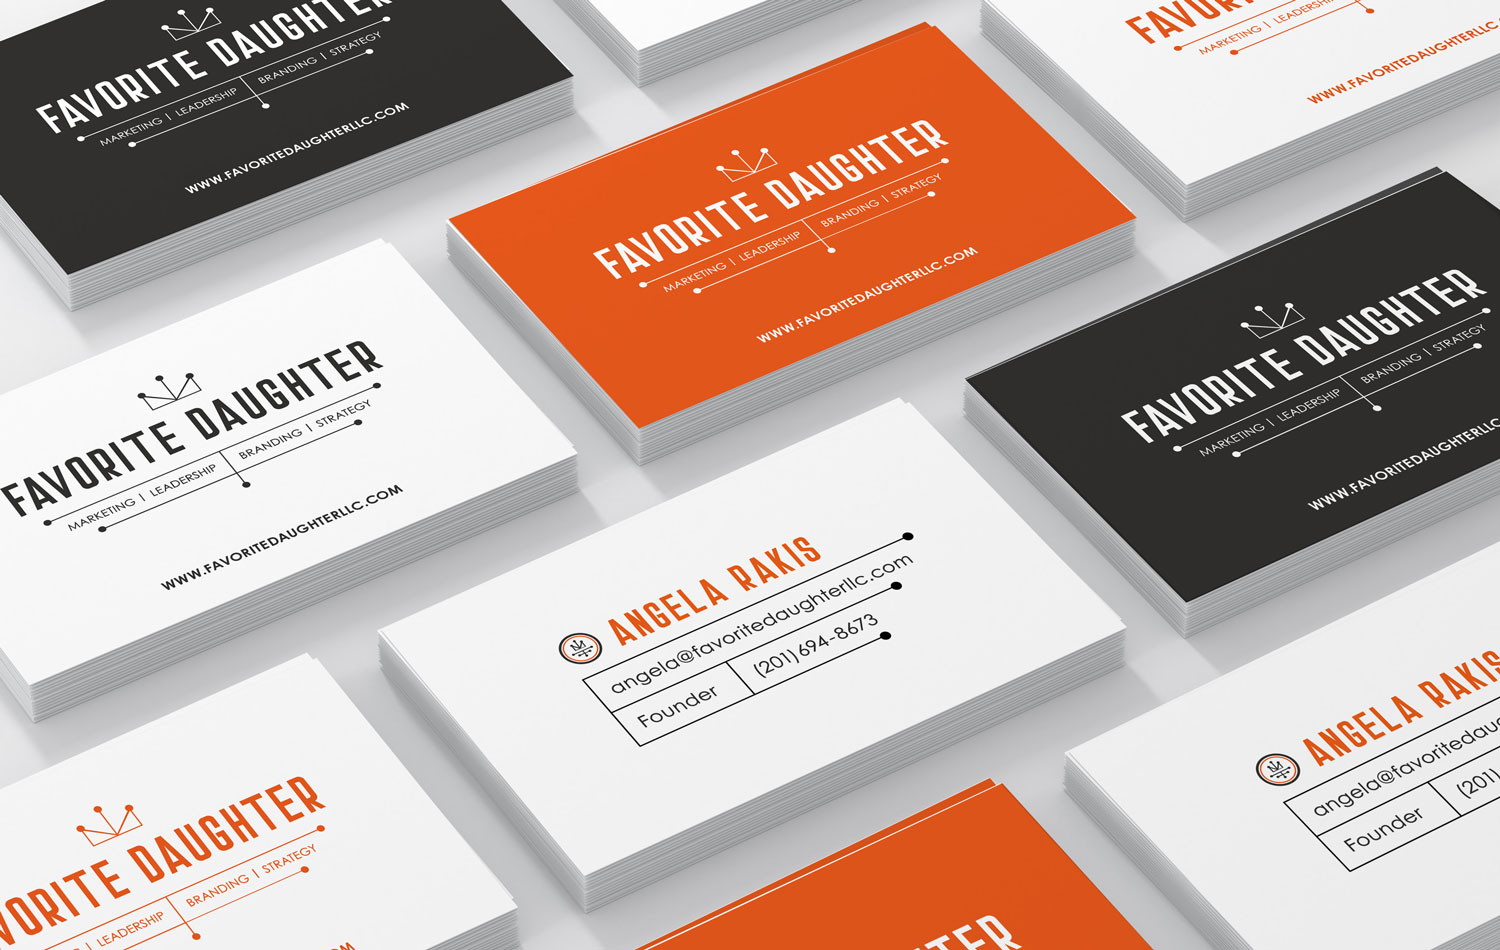 Business-Cards-Mockup-1500x900